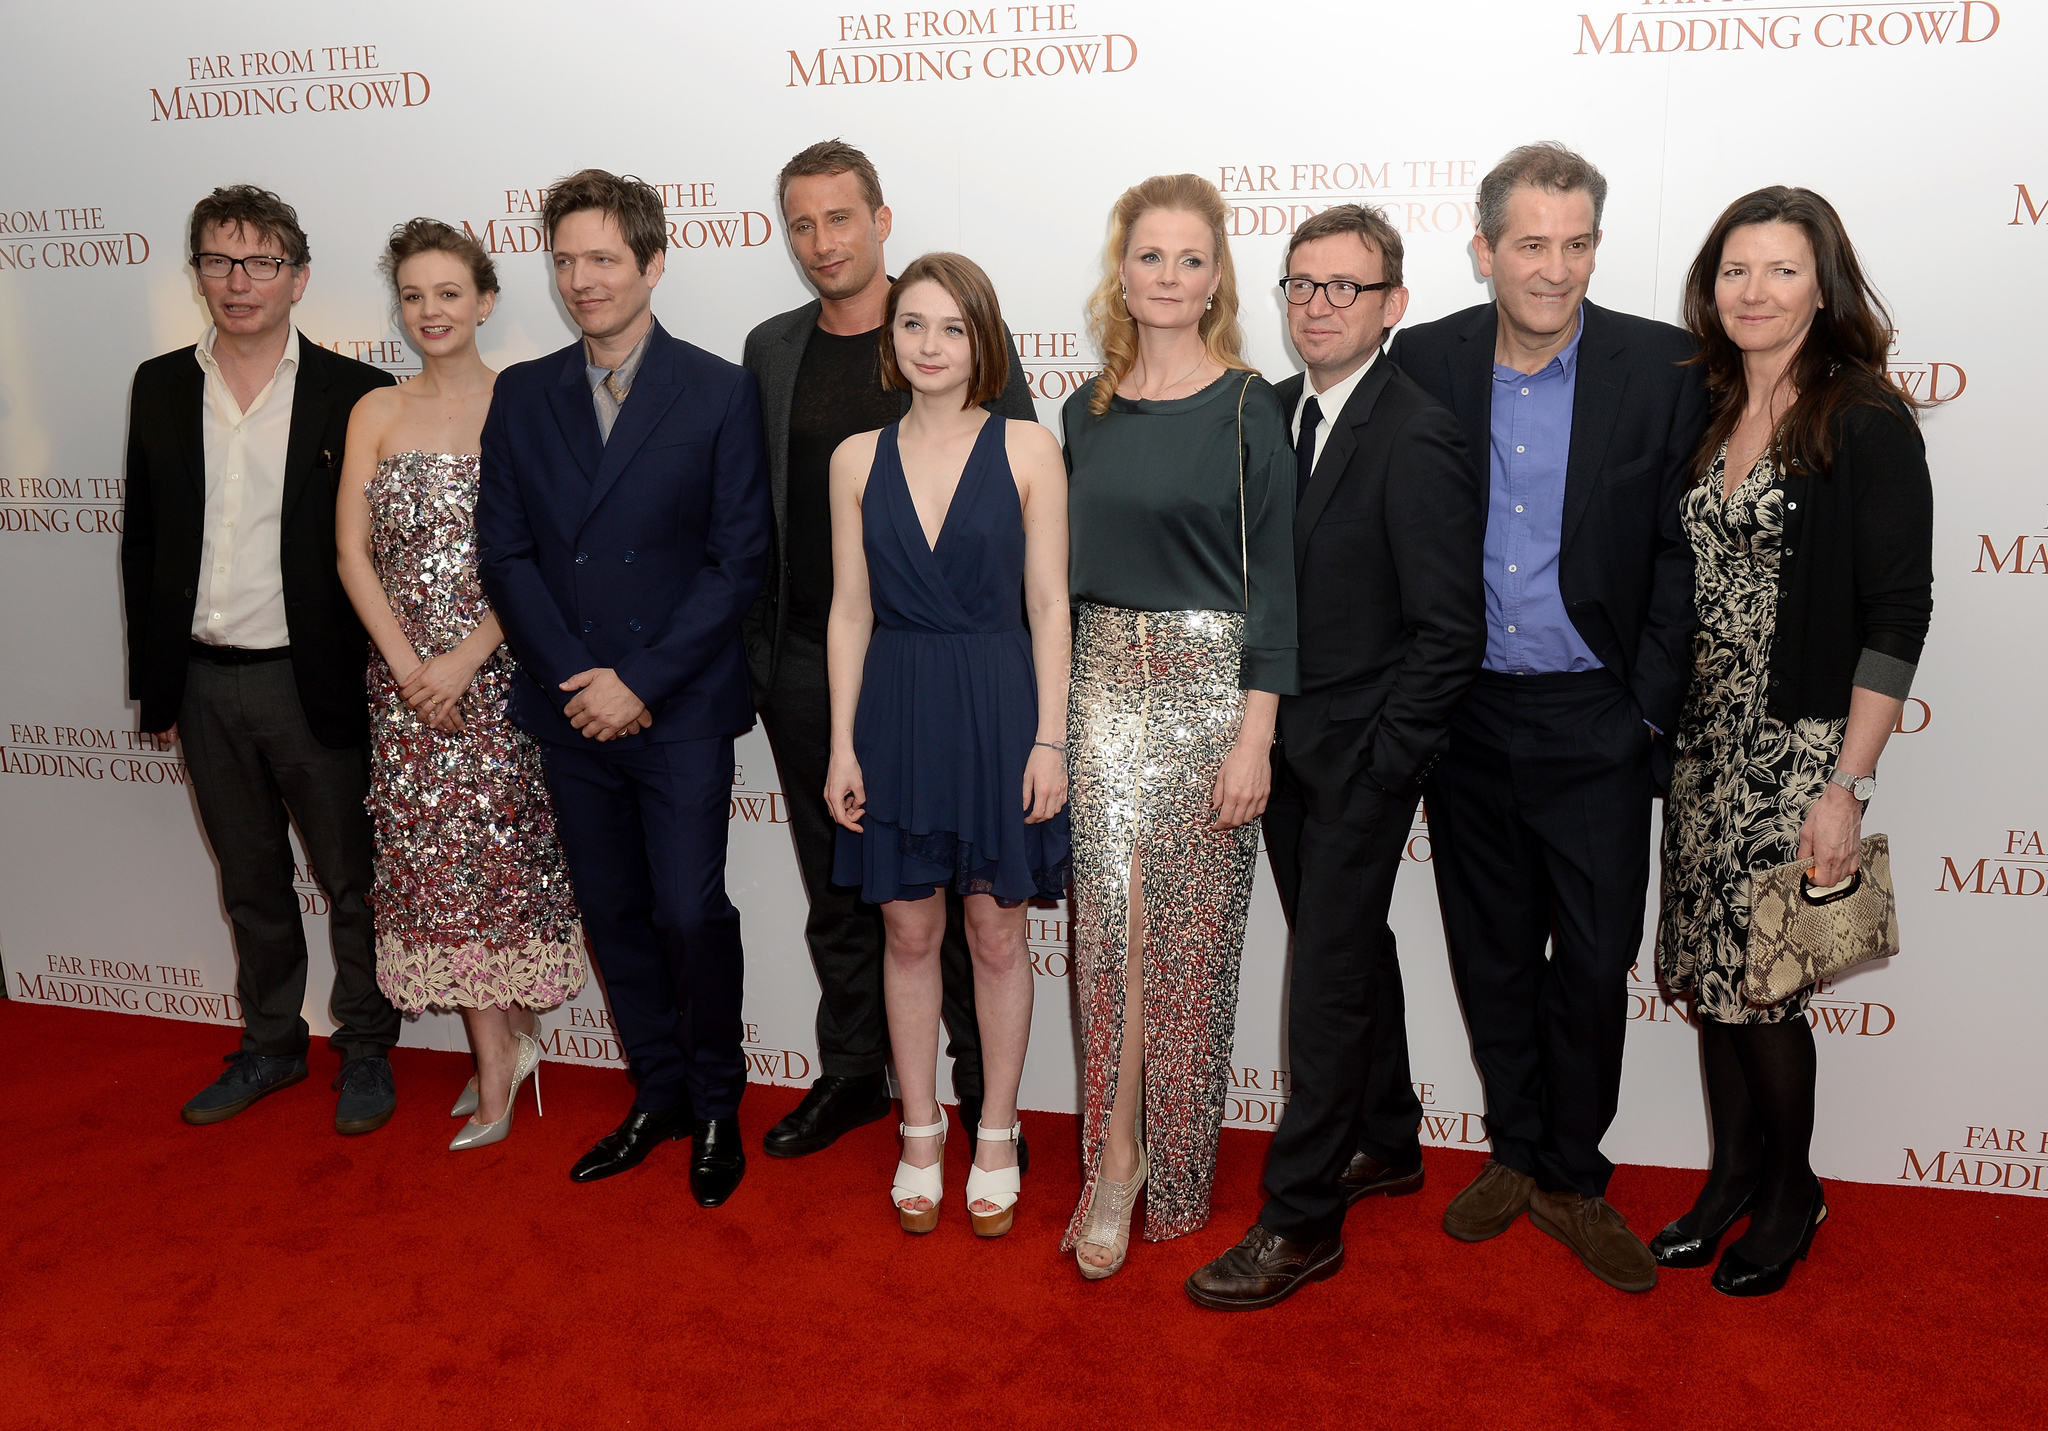 David Nicholls, Andrew Macdonald, Allon Reich, Matthias Schoenaerts, Thomas Vinterberg, Carey Mulligan, and Jessica Barden at an event for Far from the Madding Crowd (2015)